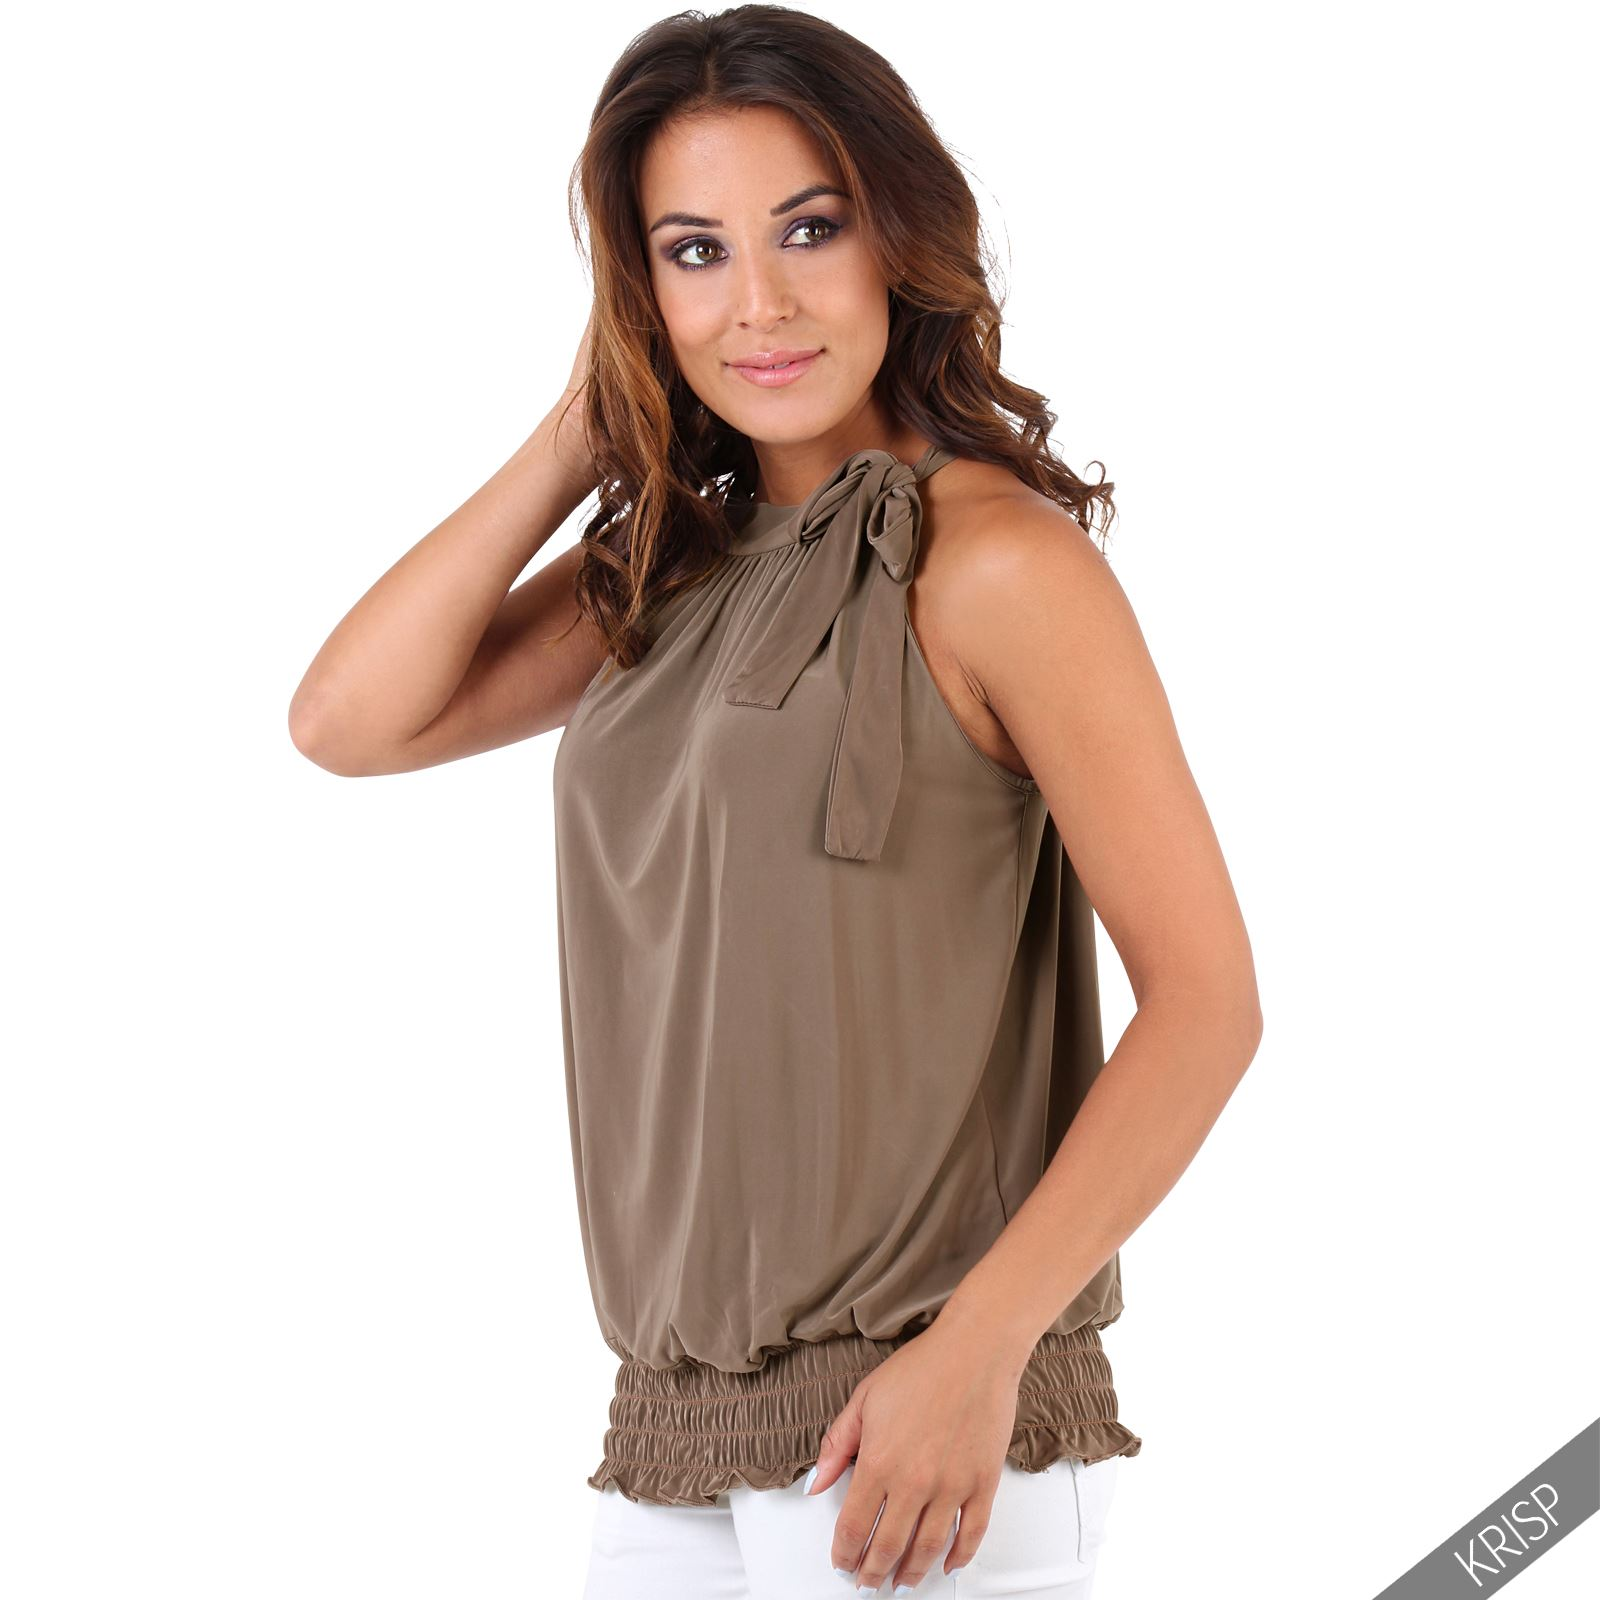 Womens-Ladies-Sleeveless-Blouse-Halter-Neck-Vest-Top-Party-T-Shirt-Plus-Size thumbnail 14